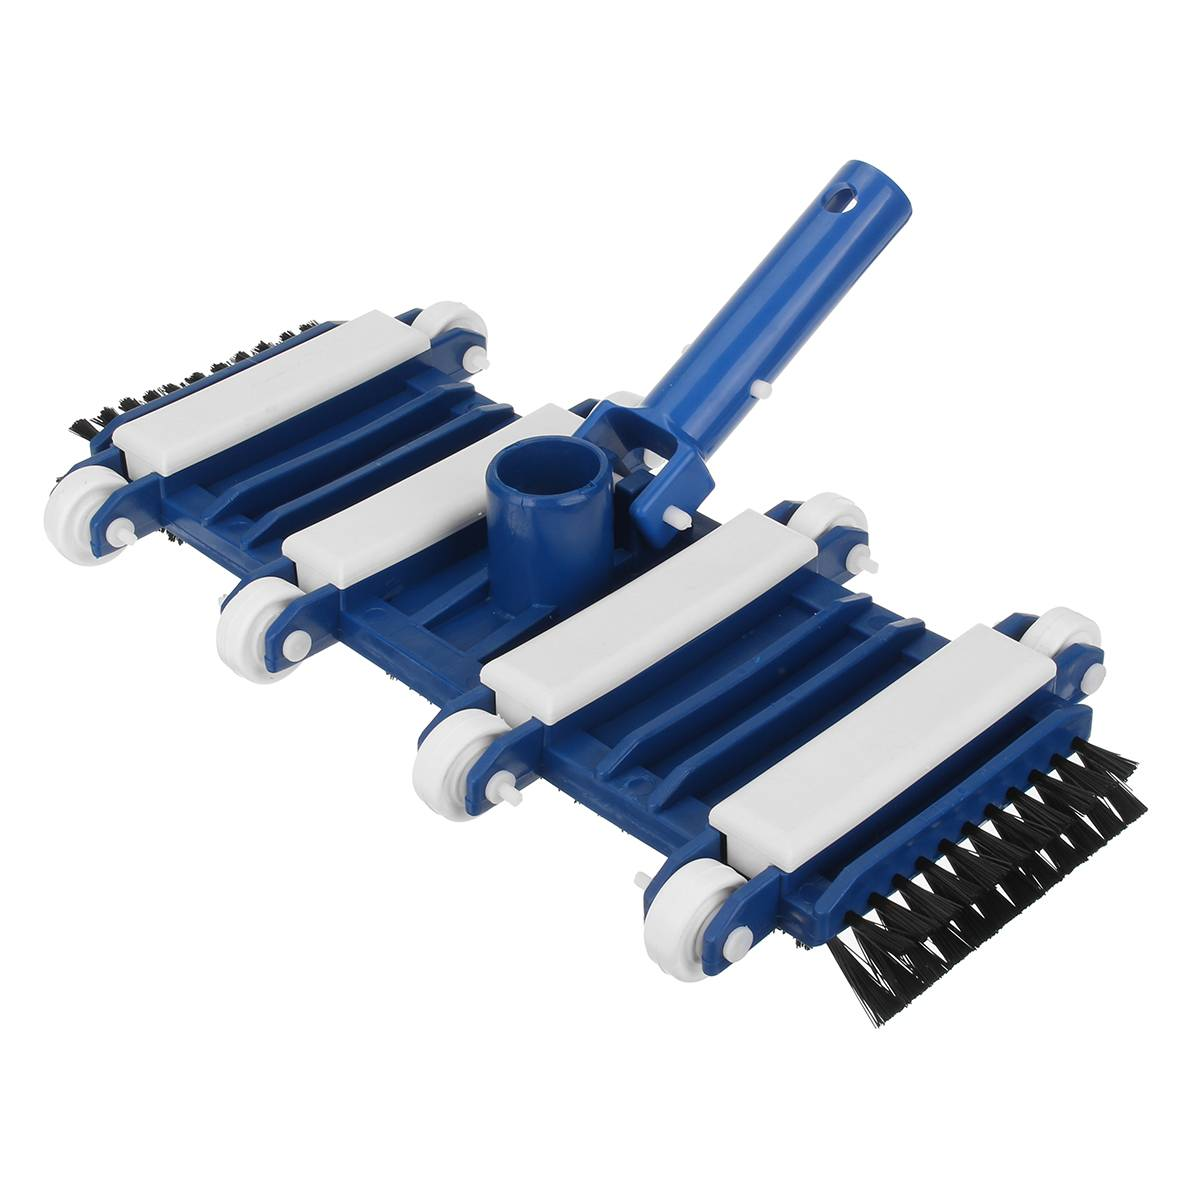 Swimming Pool Vacuum Cleaner Brush Easy To Clean Leaves Other Debris For Swimming Pool Spa Pond Tub Accessories